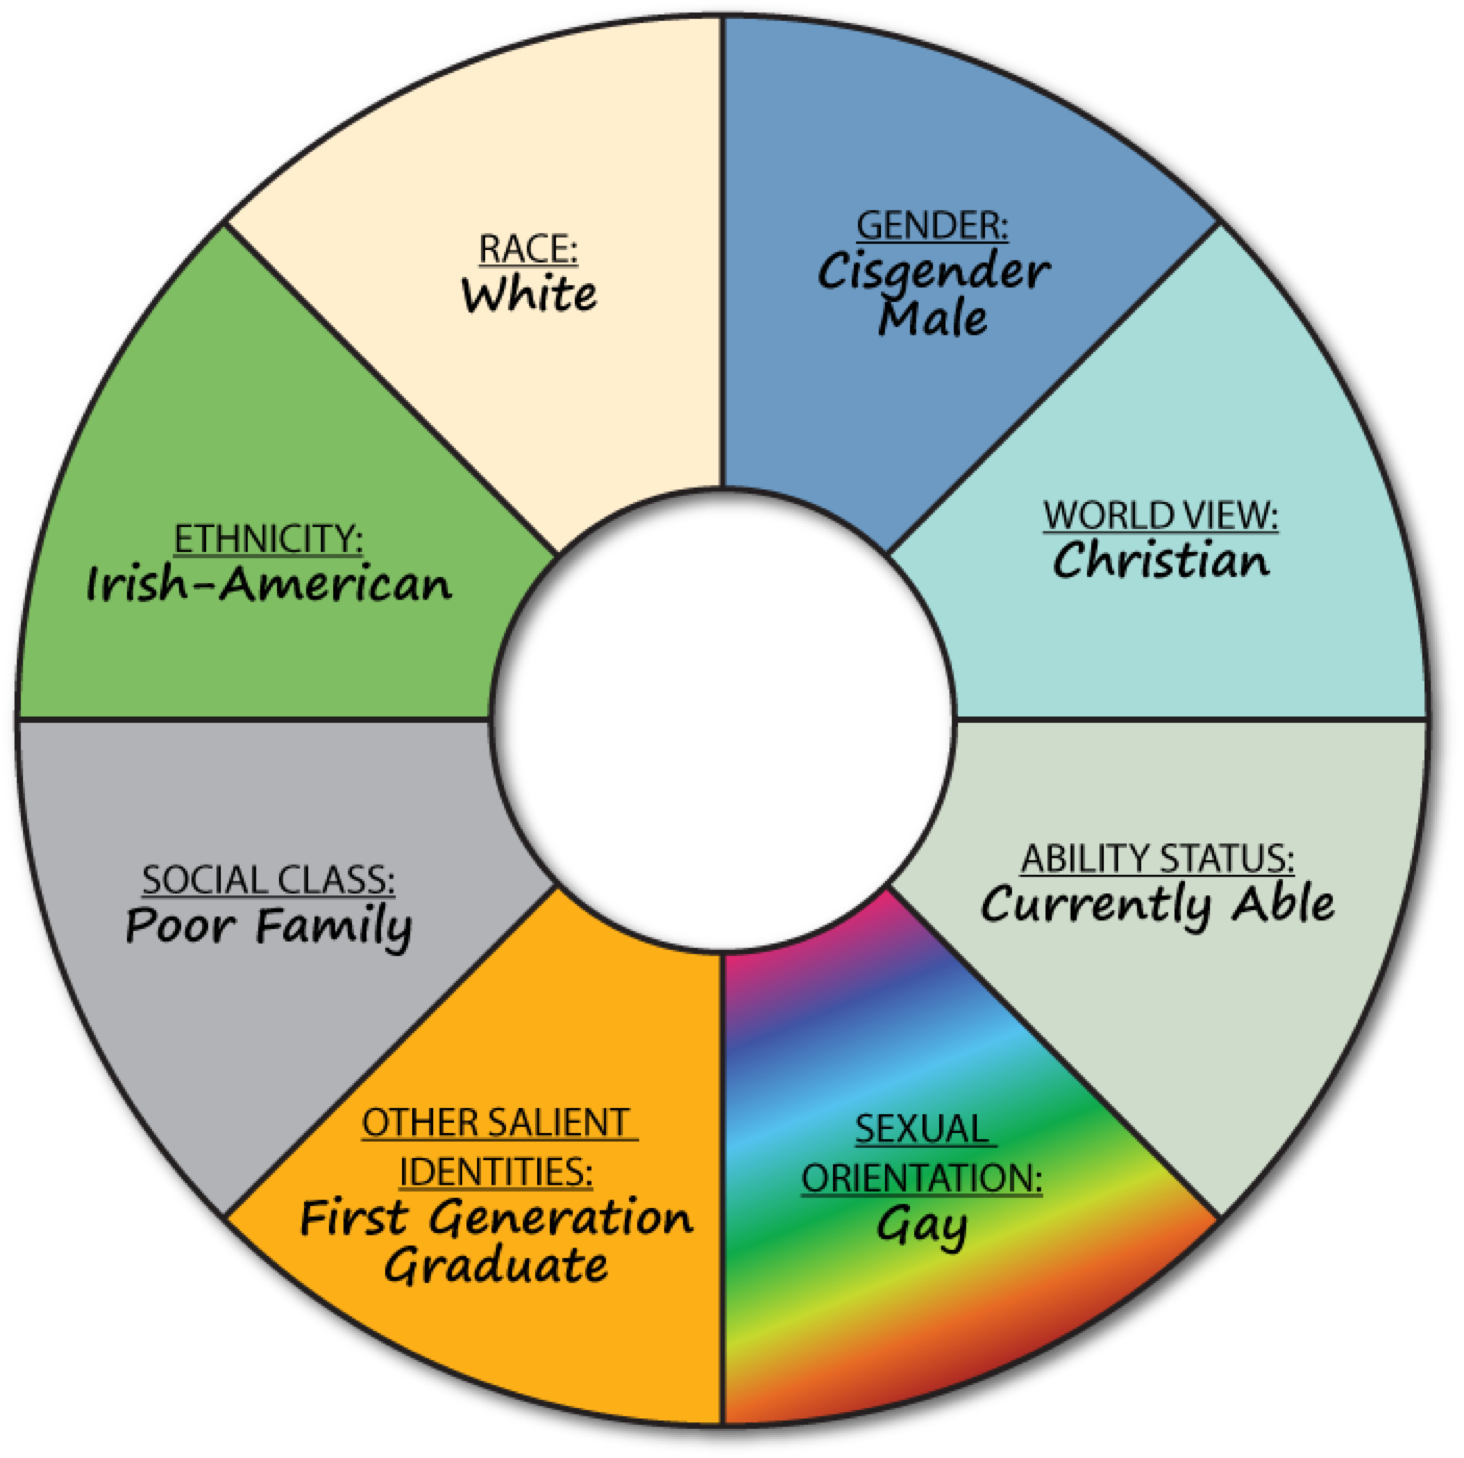 example of a completed social identity wheel